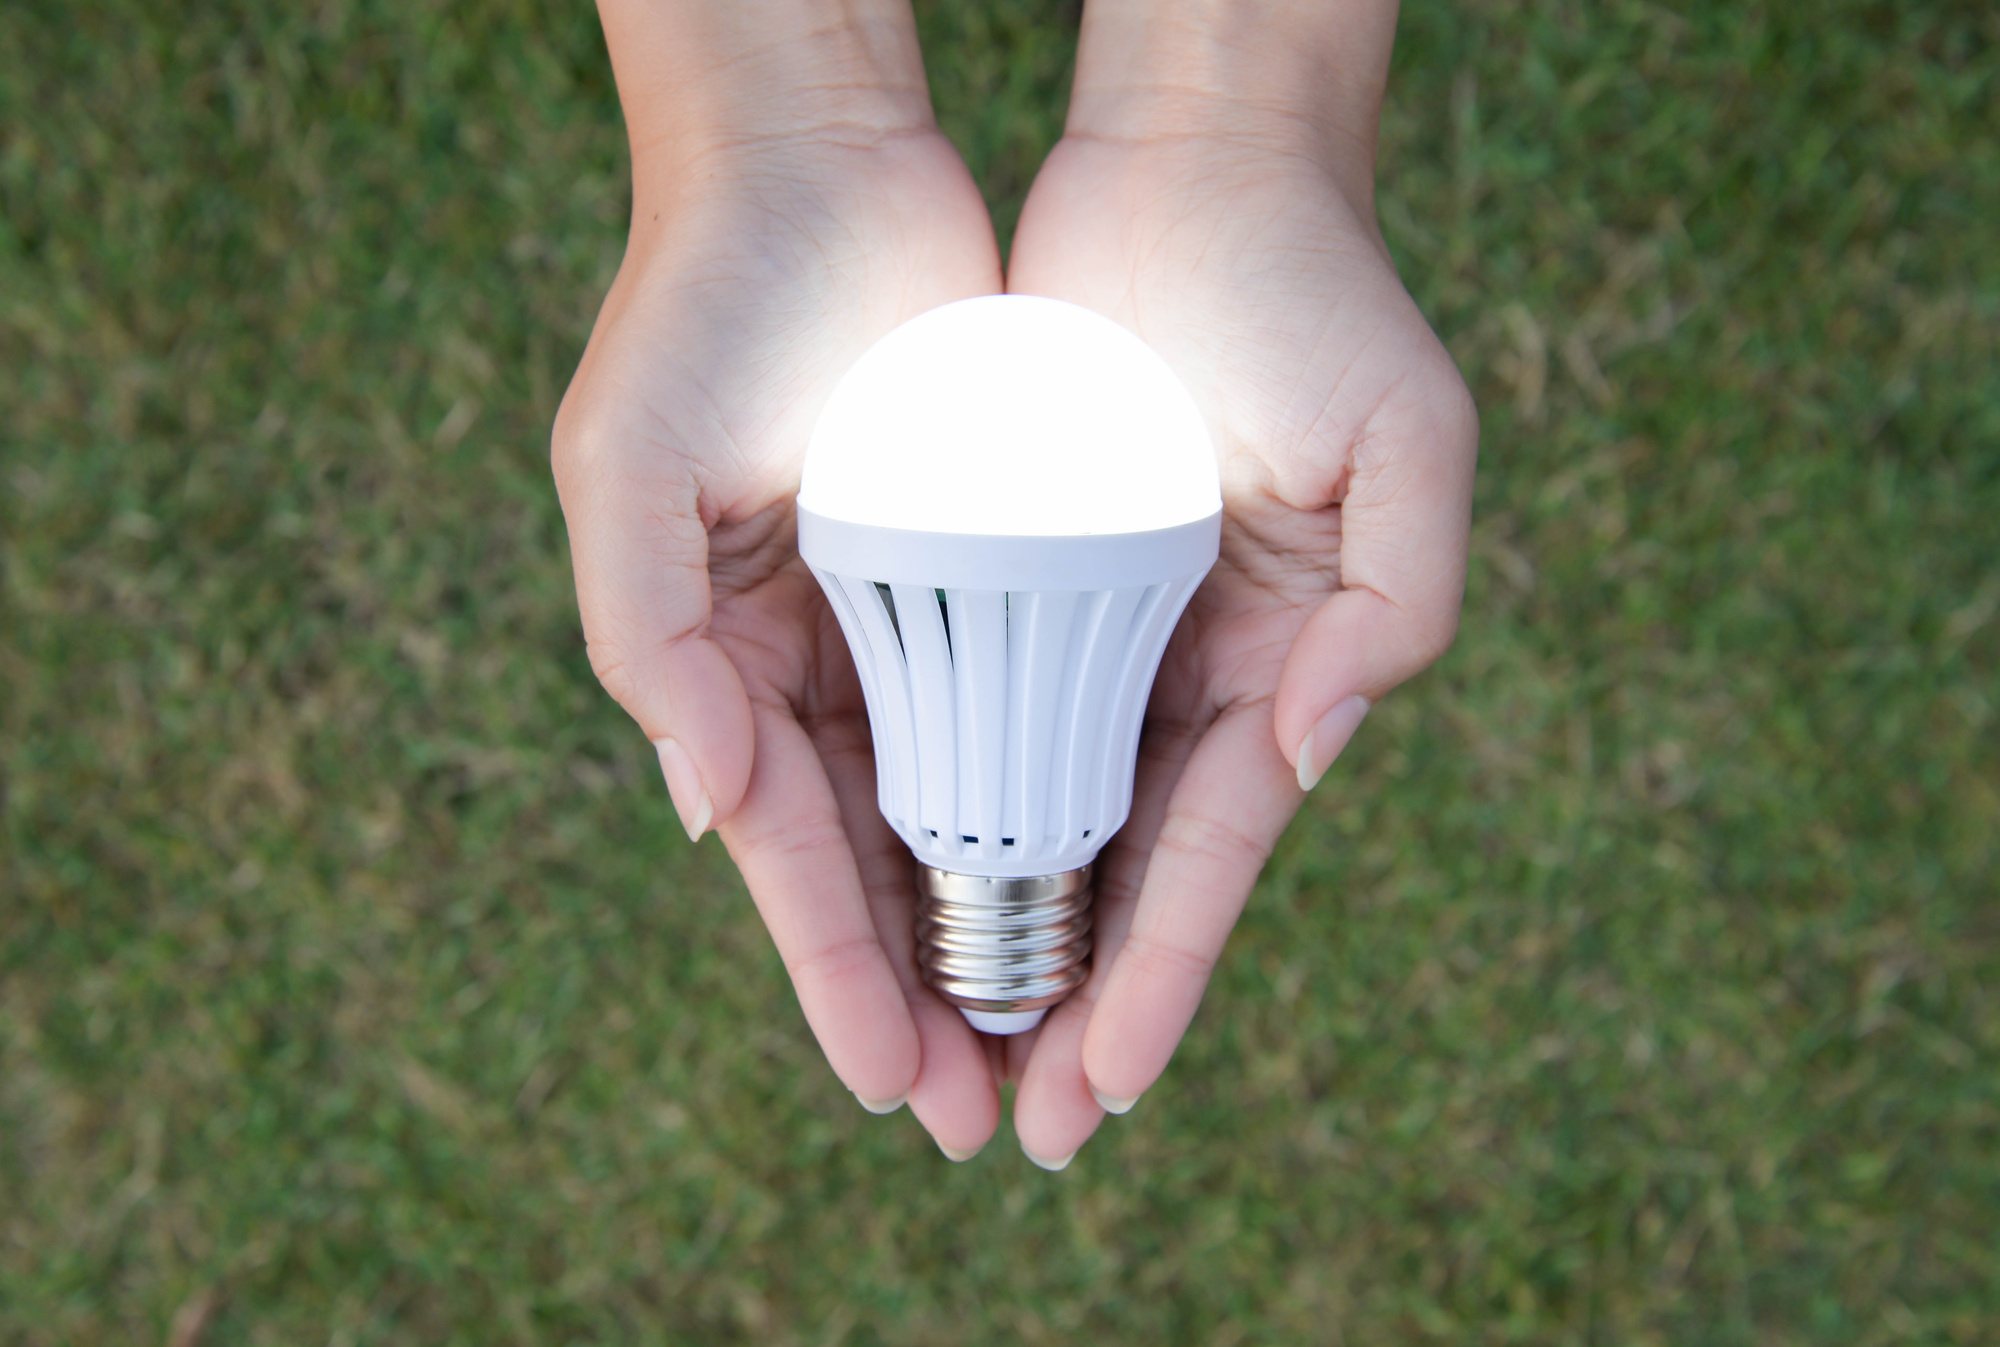 LED bulb in hand